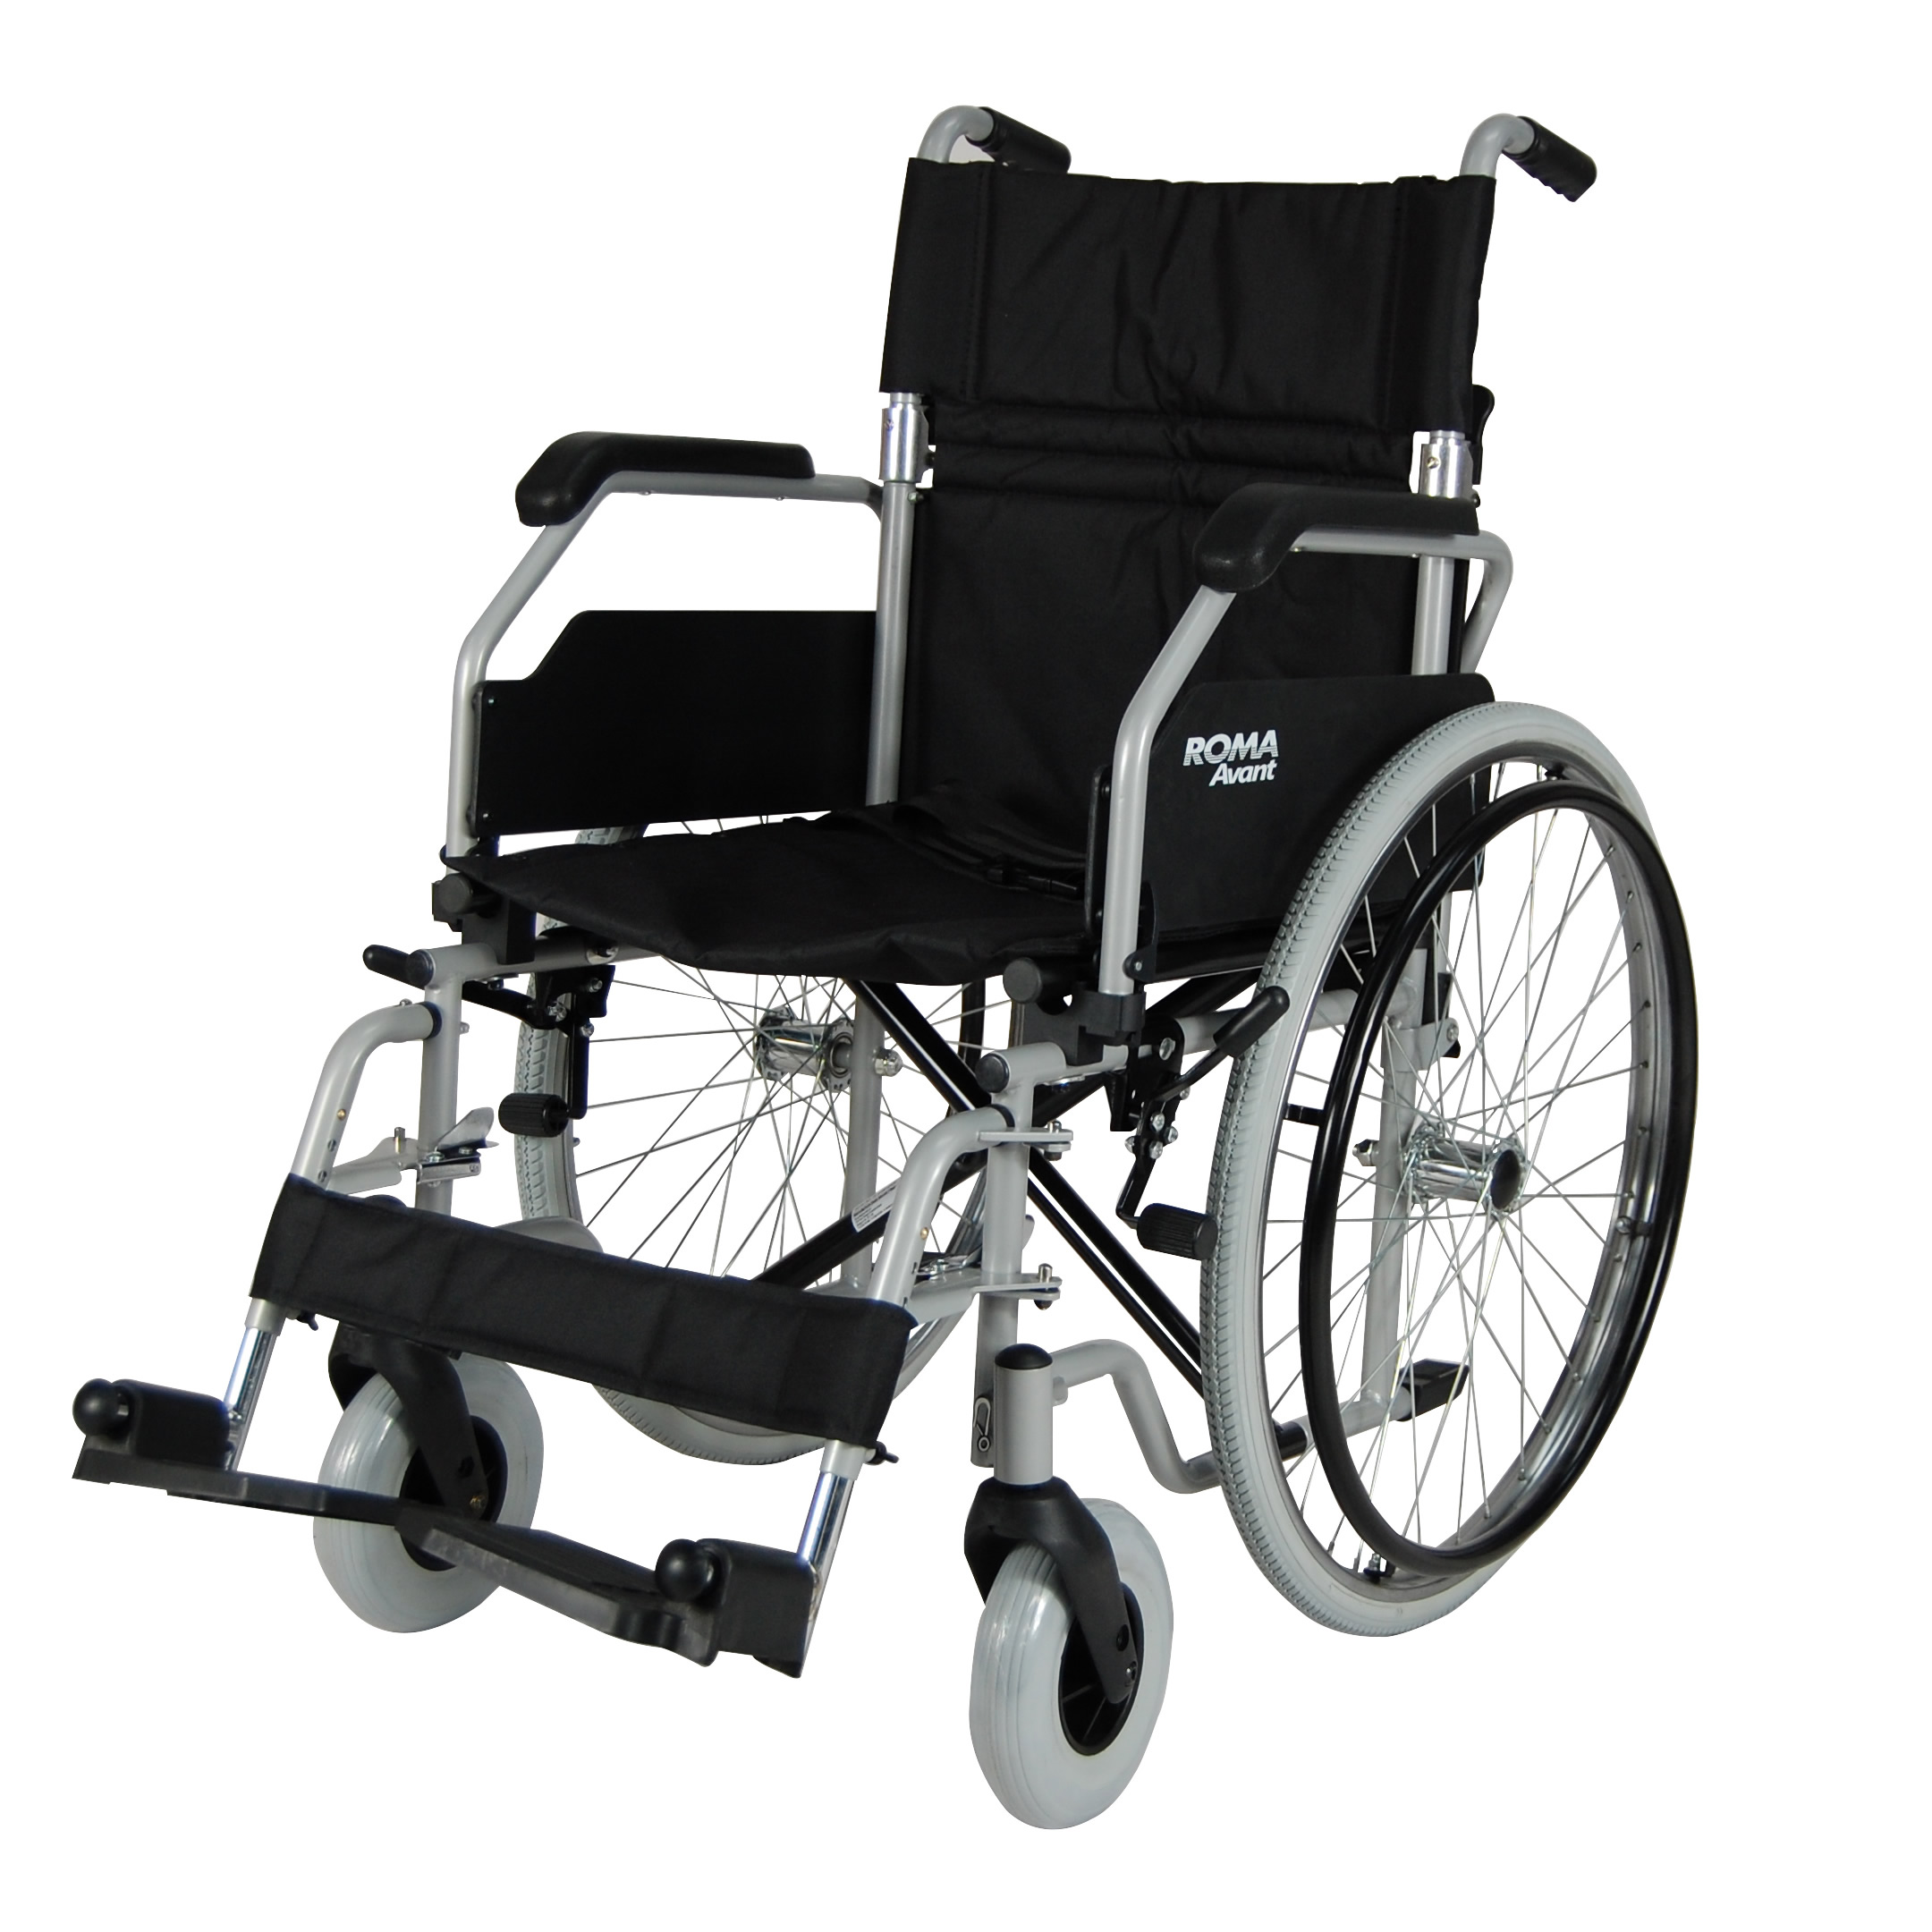 Roma Avant Car Self Propelled Wheelchair Free next day delivery